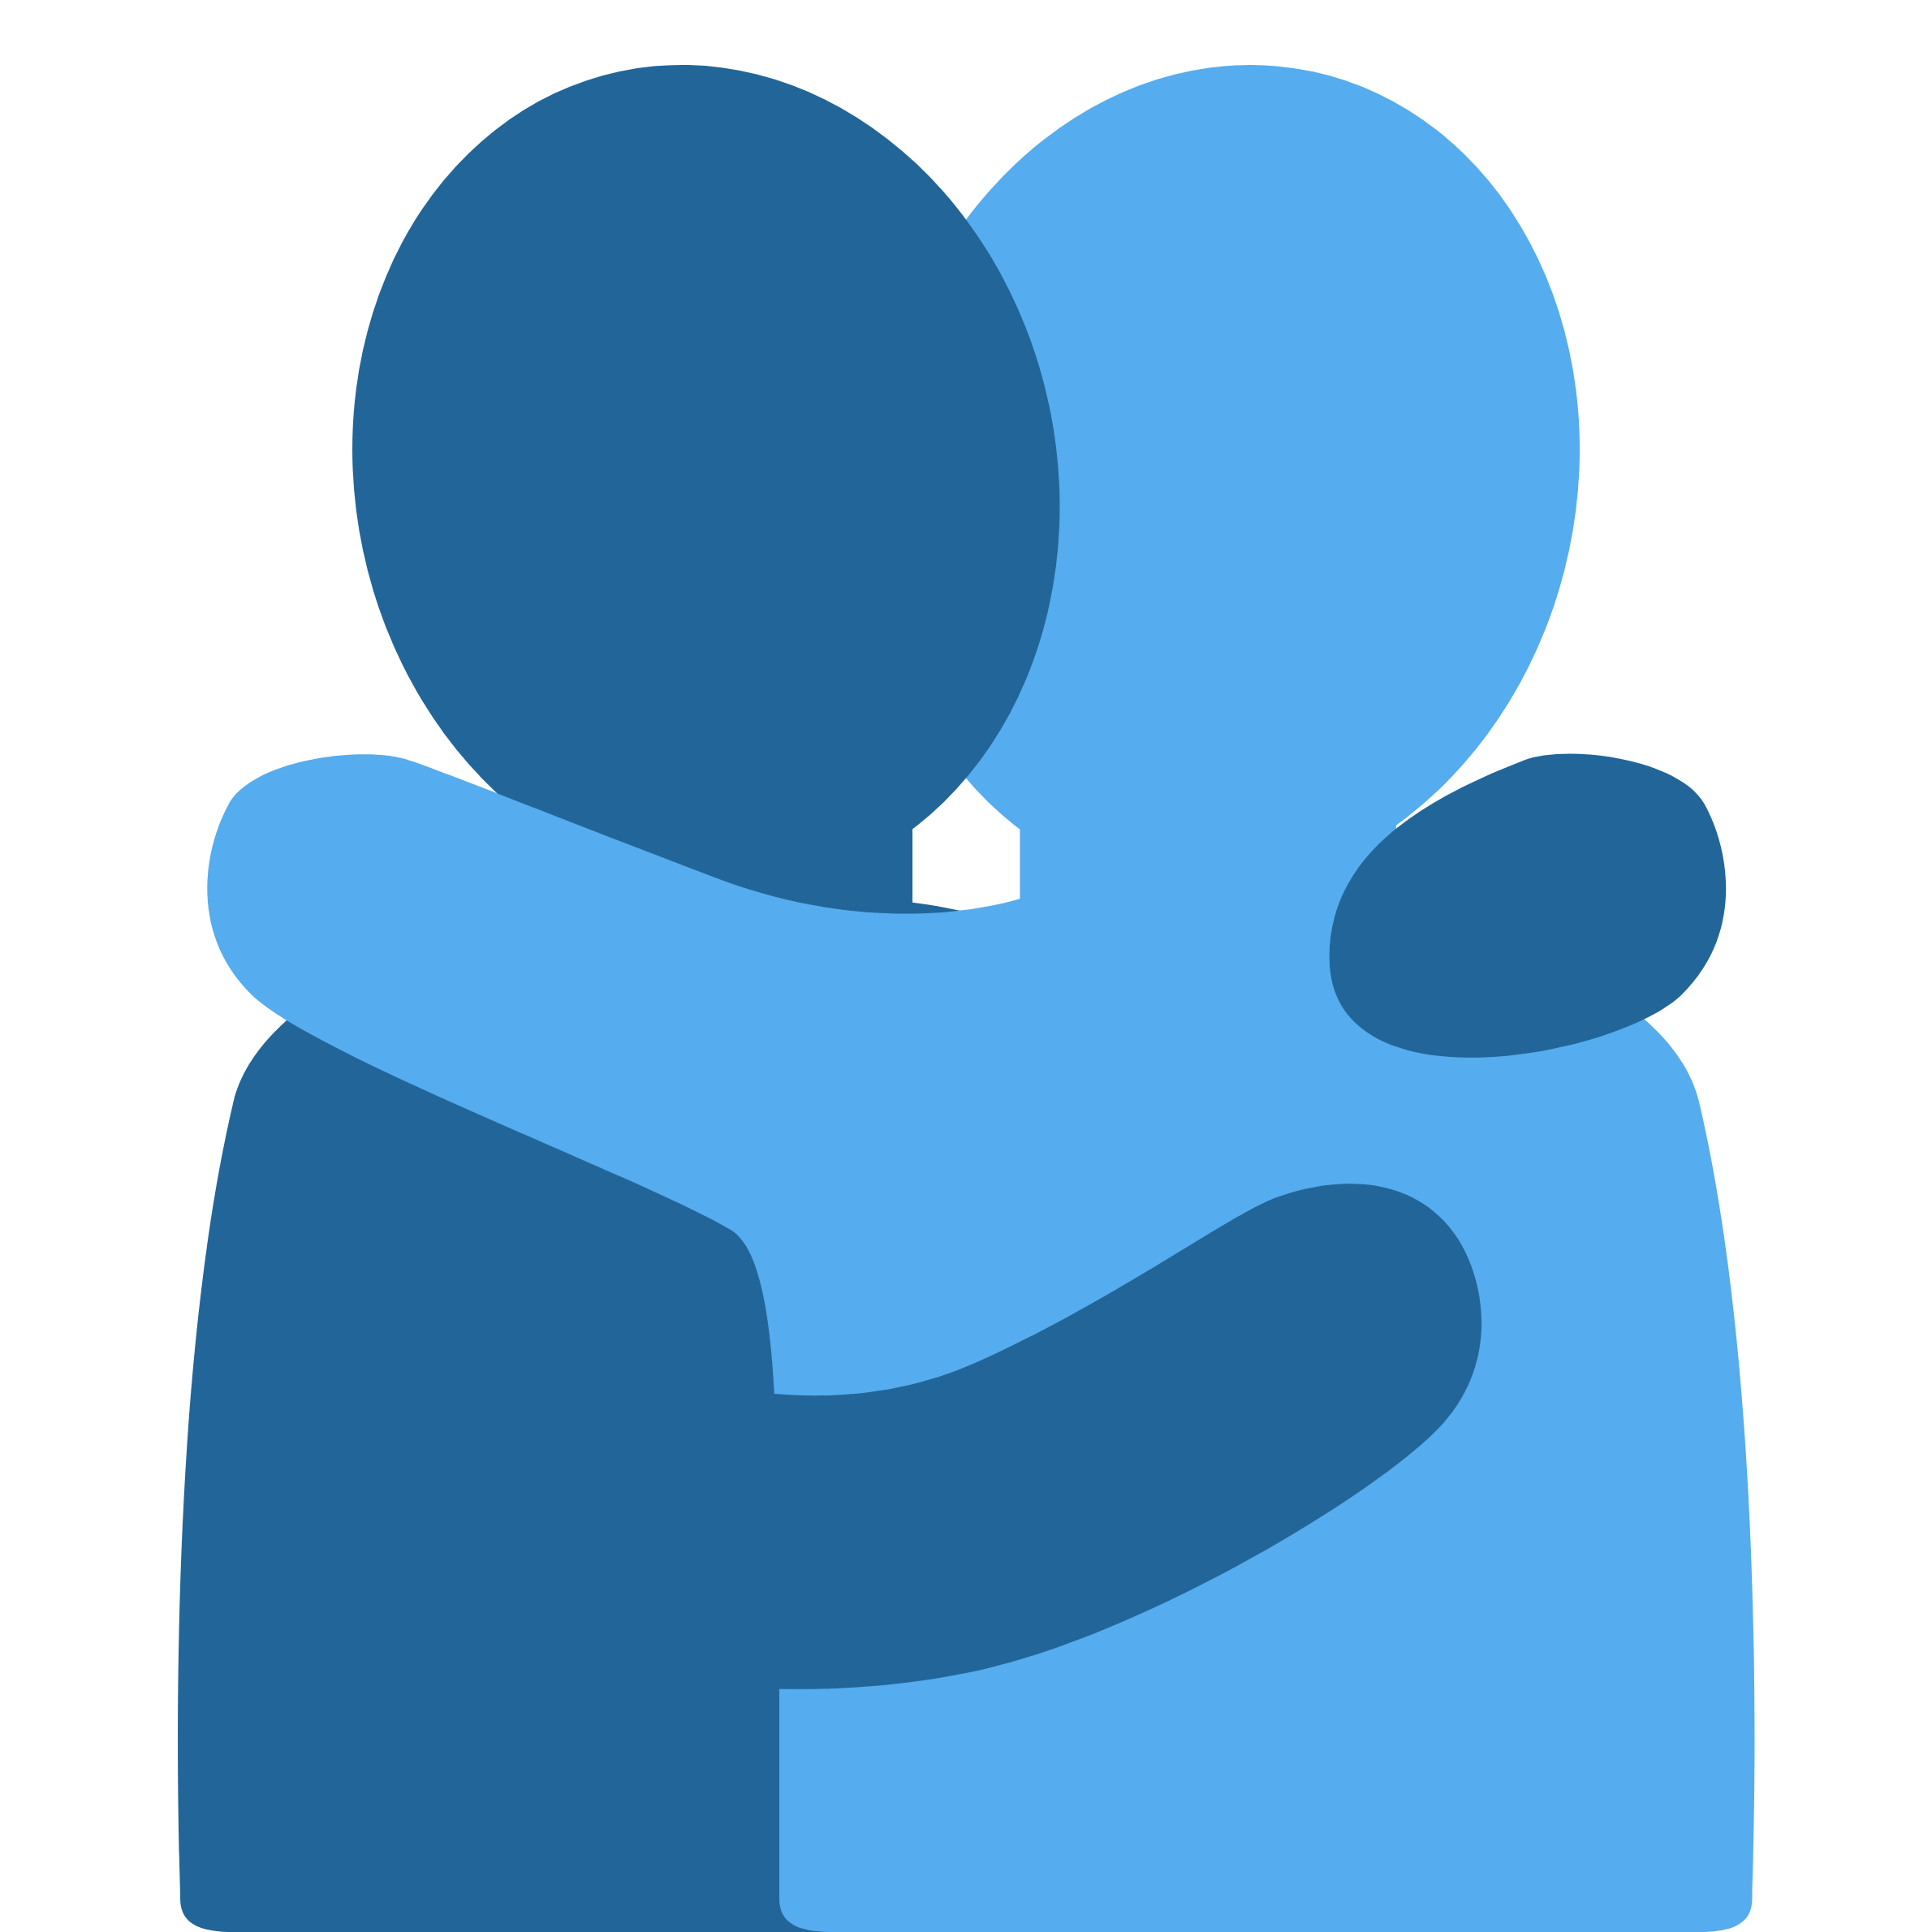 A Silhouette of two people hugging